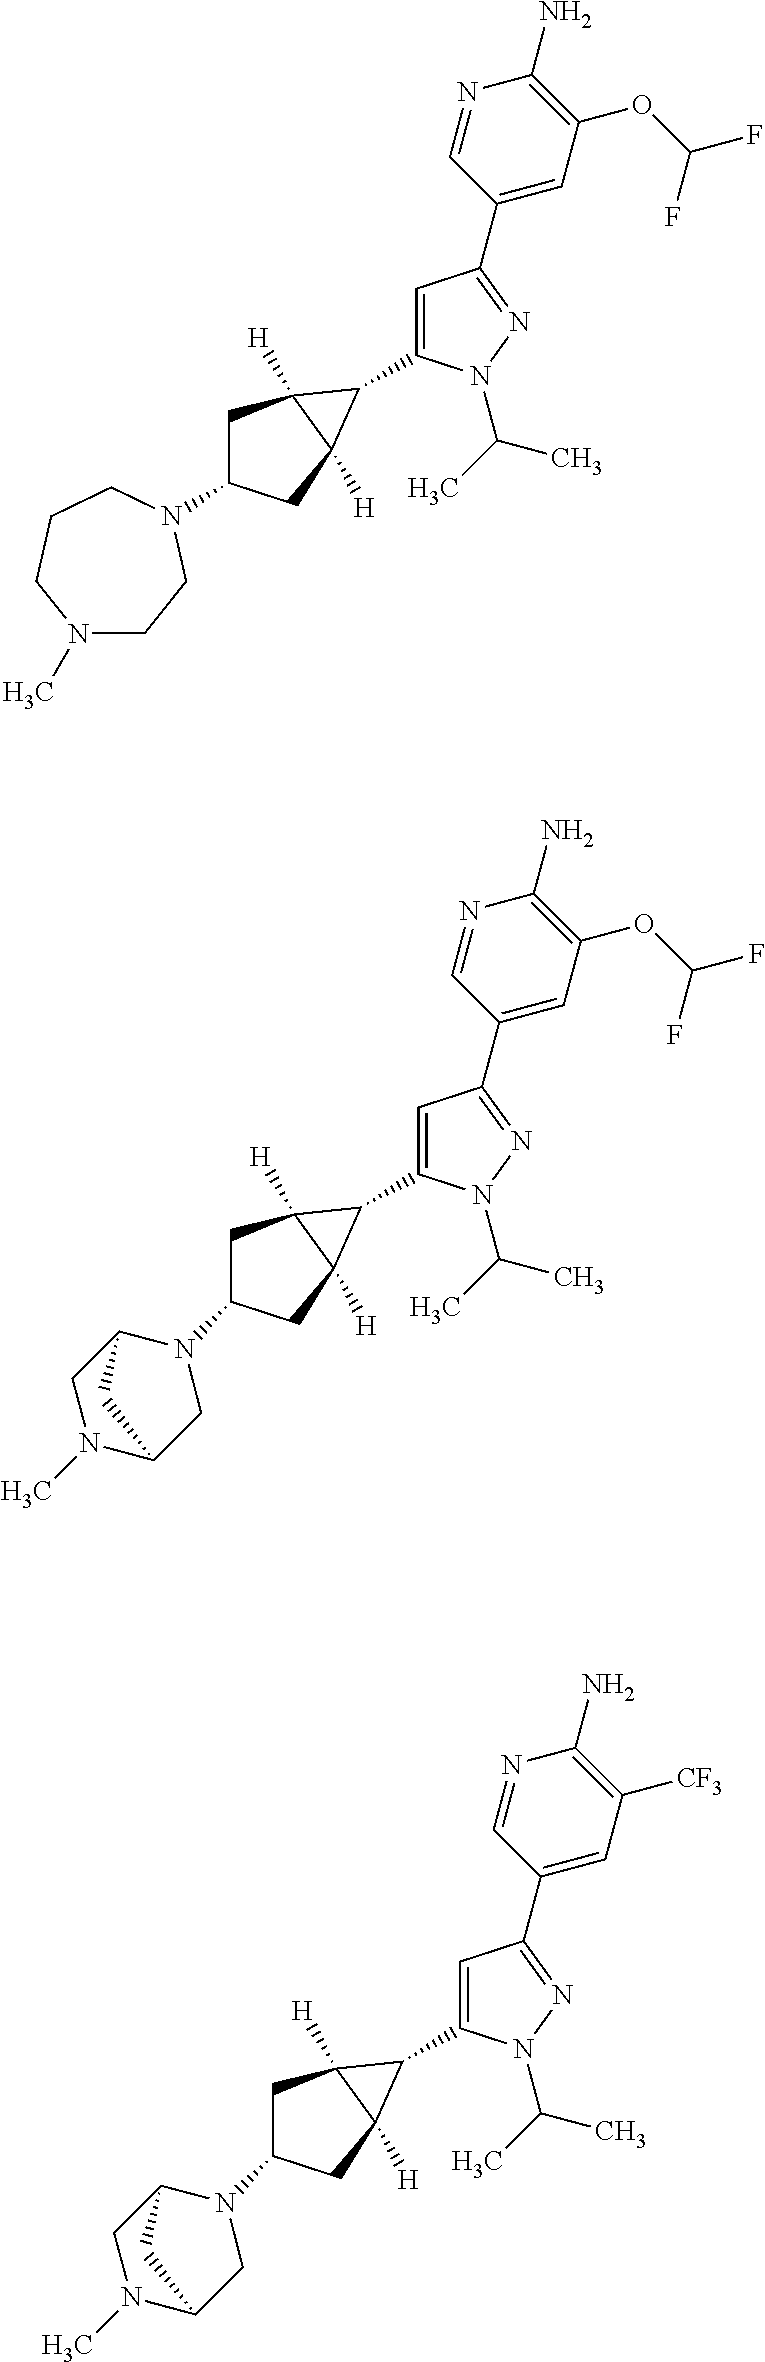 us9365583b2 substituted pyrazoles and uses thereof patents F-22 Wallpaper figure us09365583 20160614 c00087